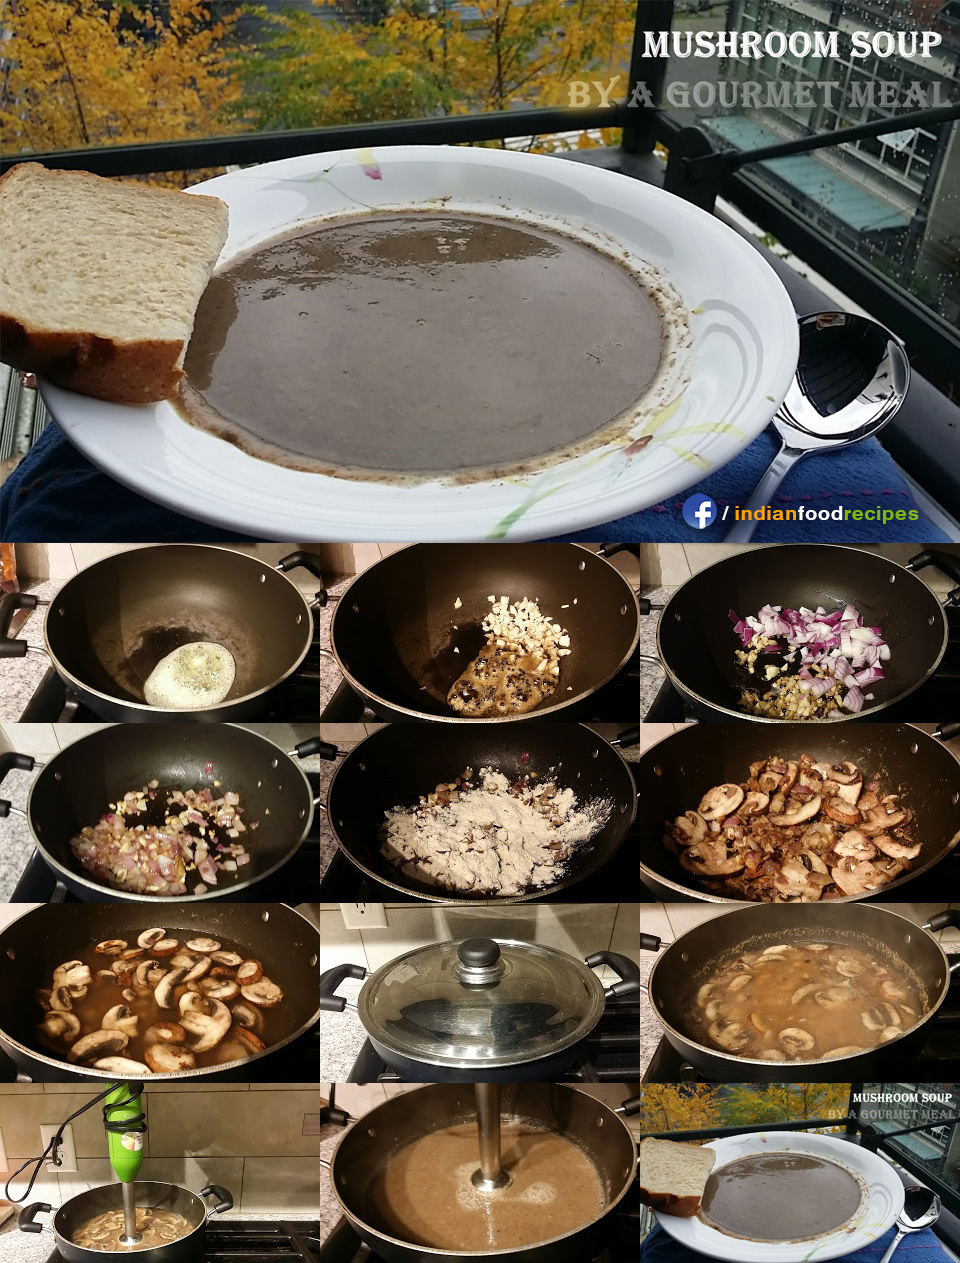 Mushroom soup recipe step by step